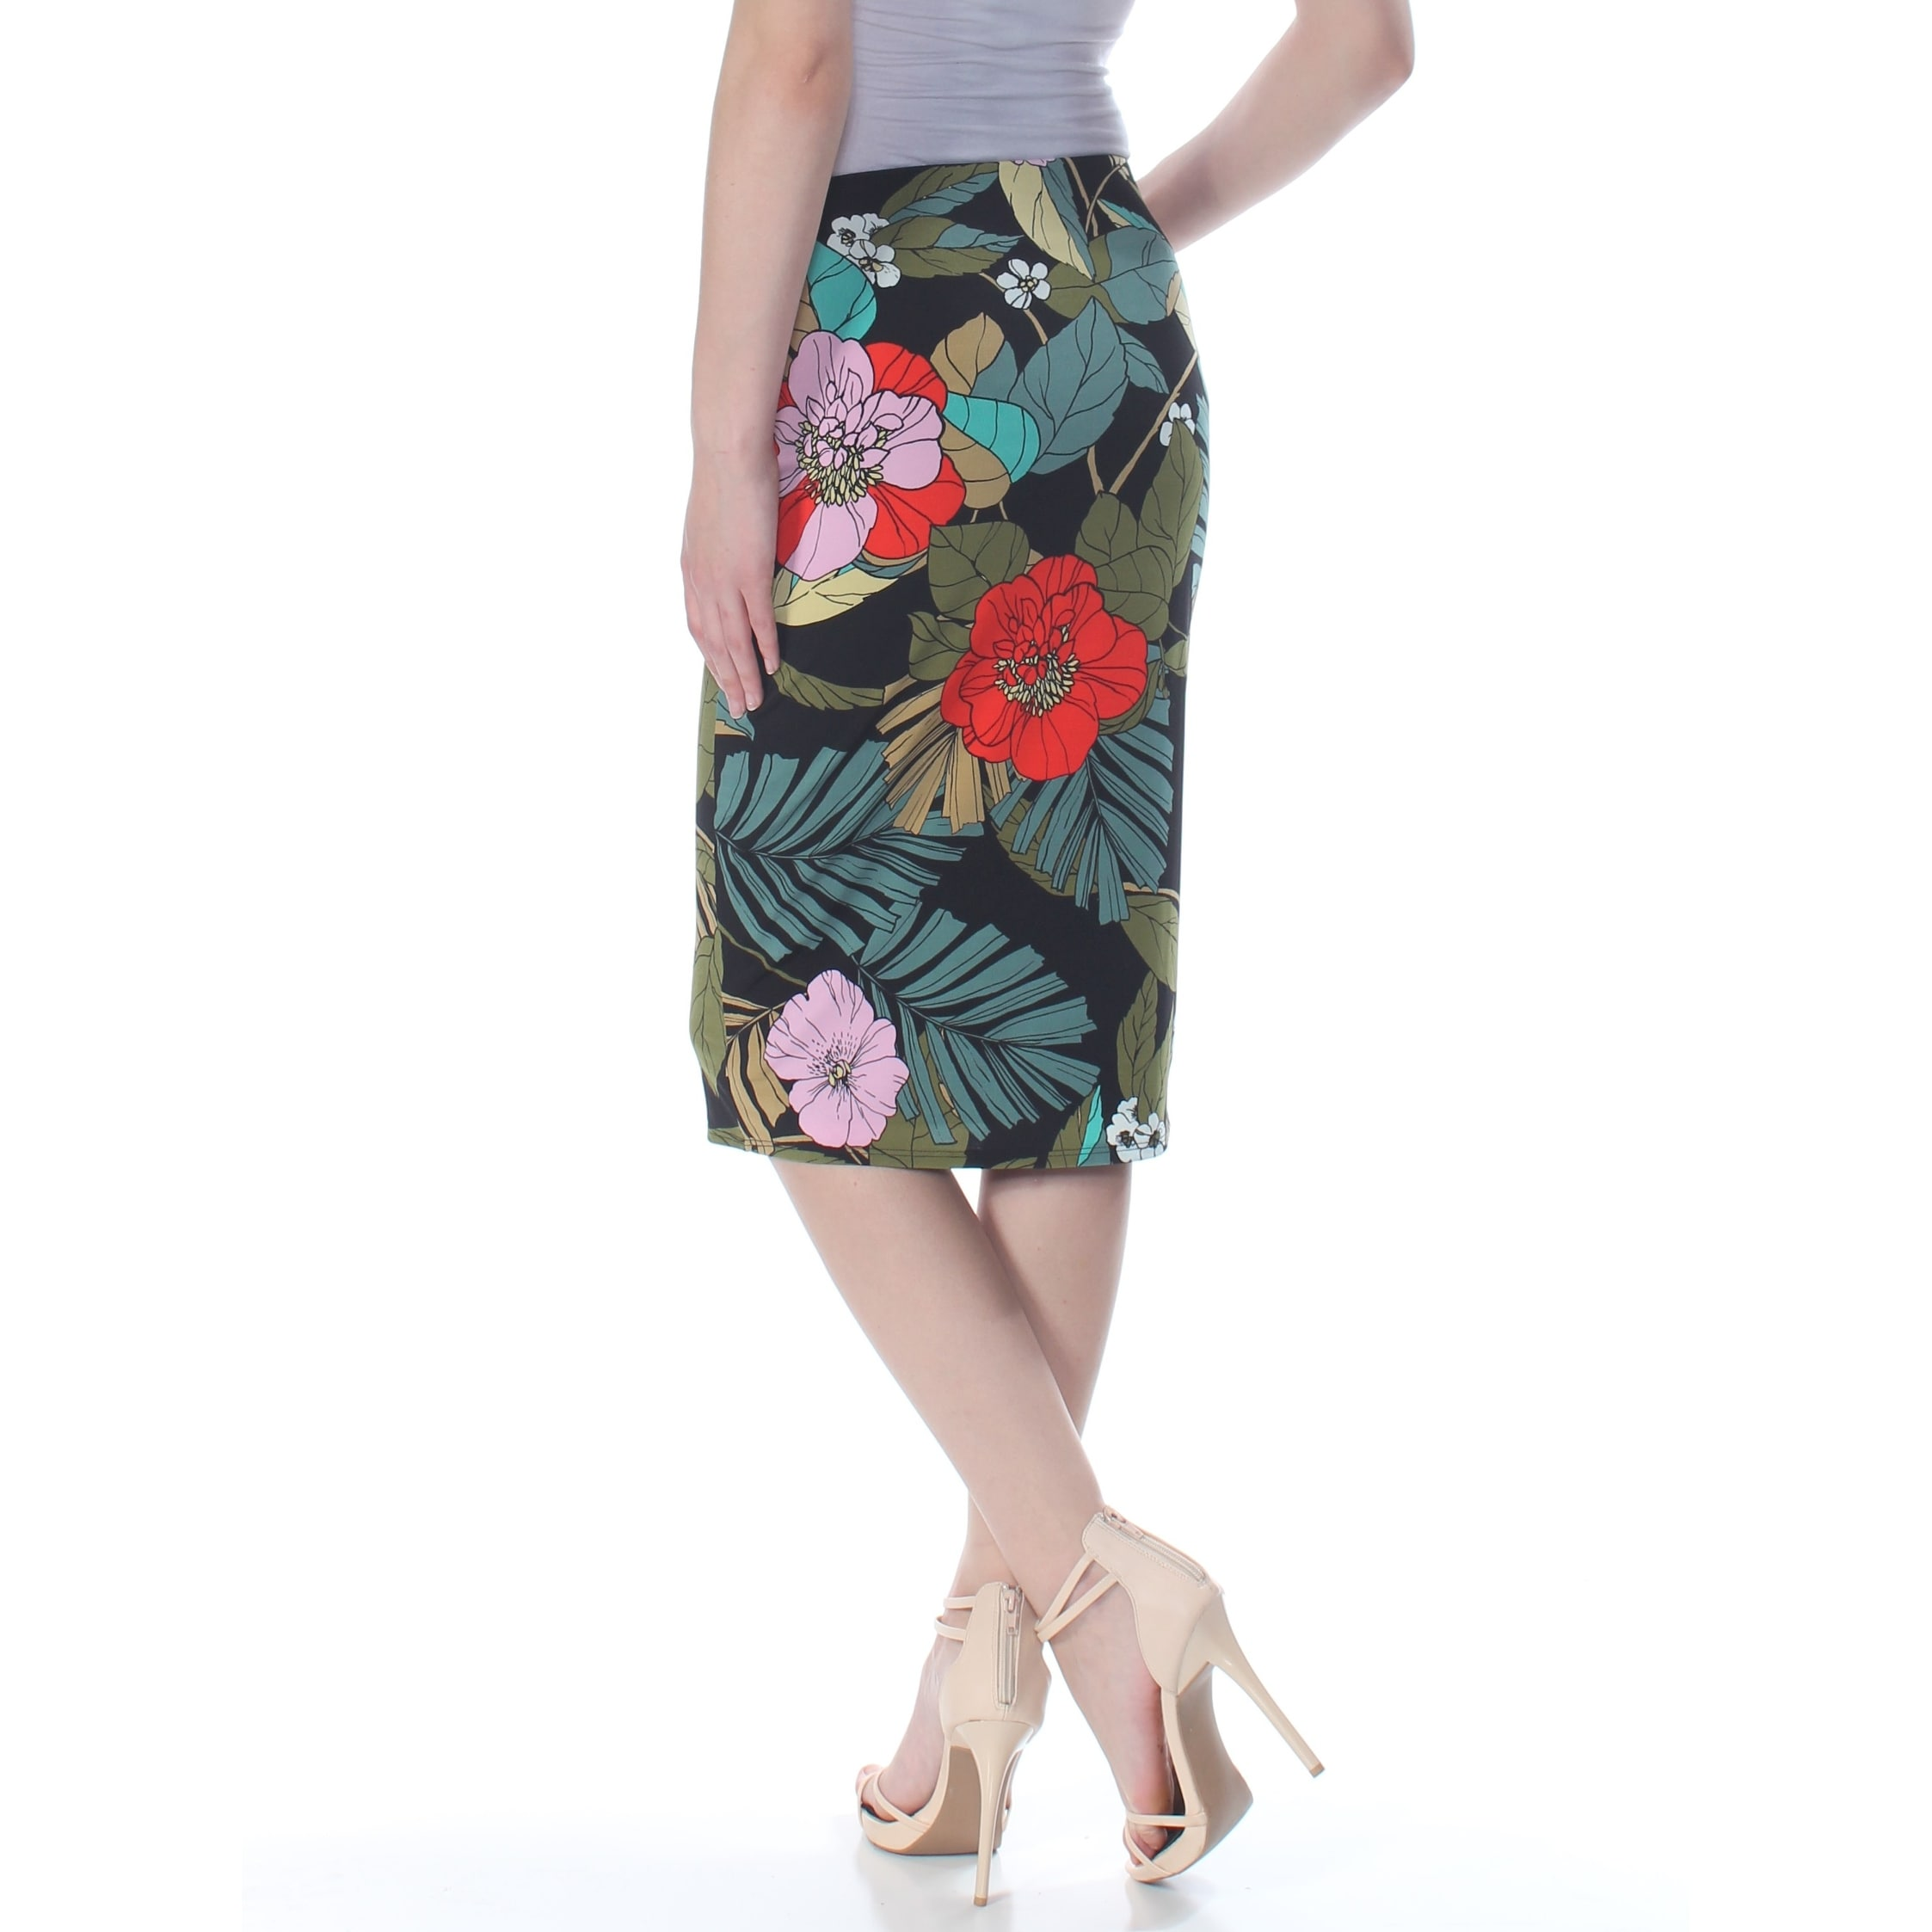 c8bd3f31f Shop GUESS Womens Black Floral Below The Knee Pencil Skirt Plus Size: M -  Free Shipping On Orders Over $45 - Overstock - 27986820